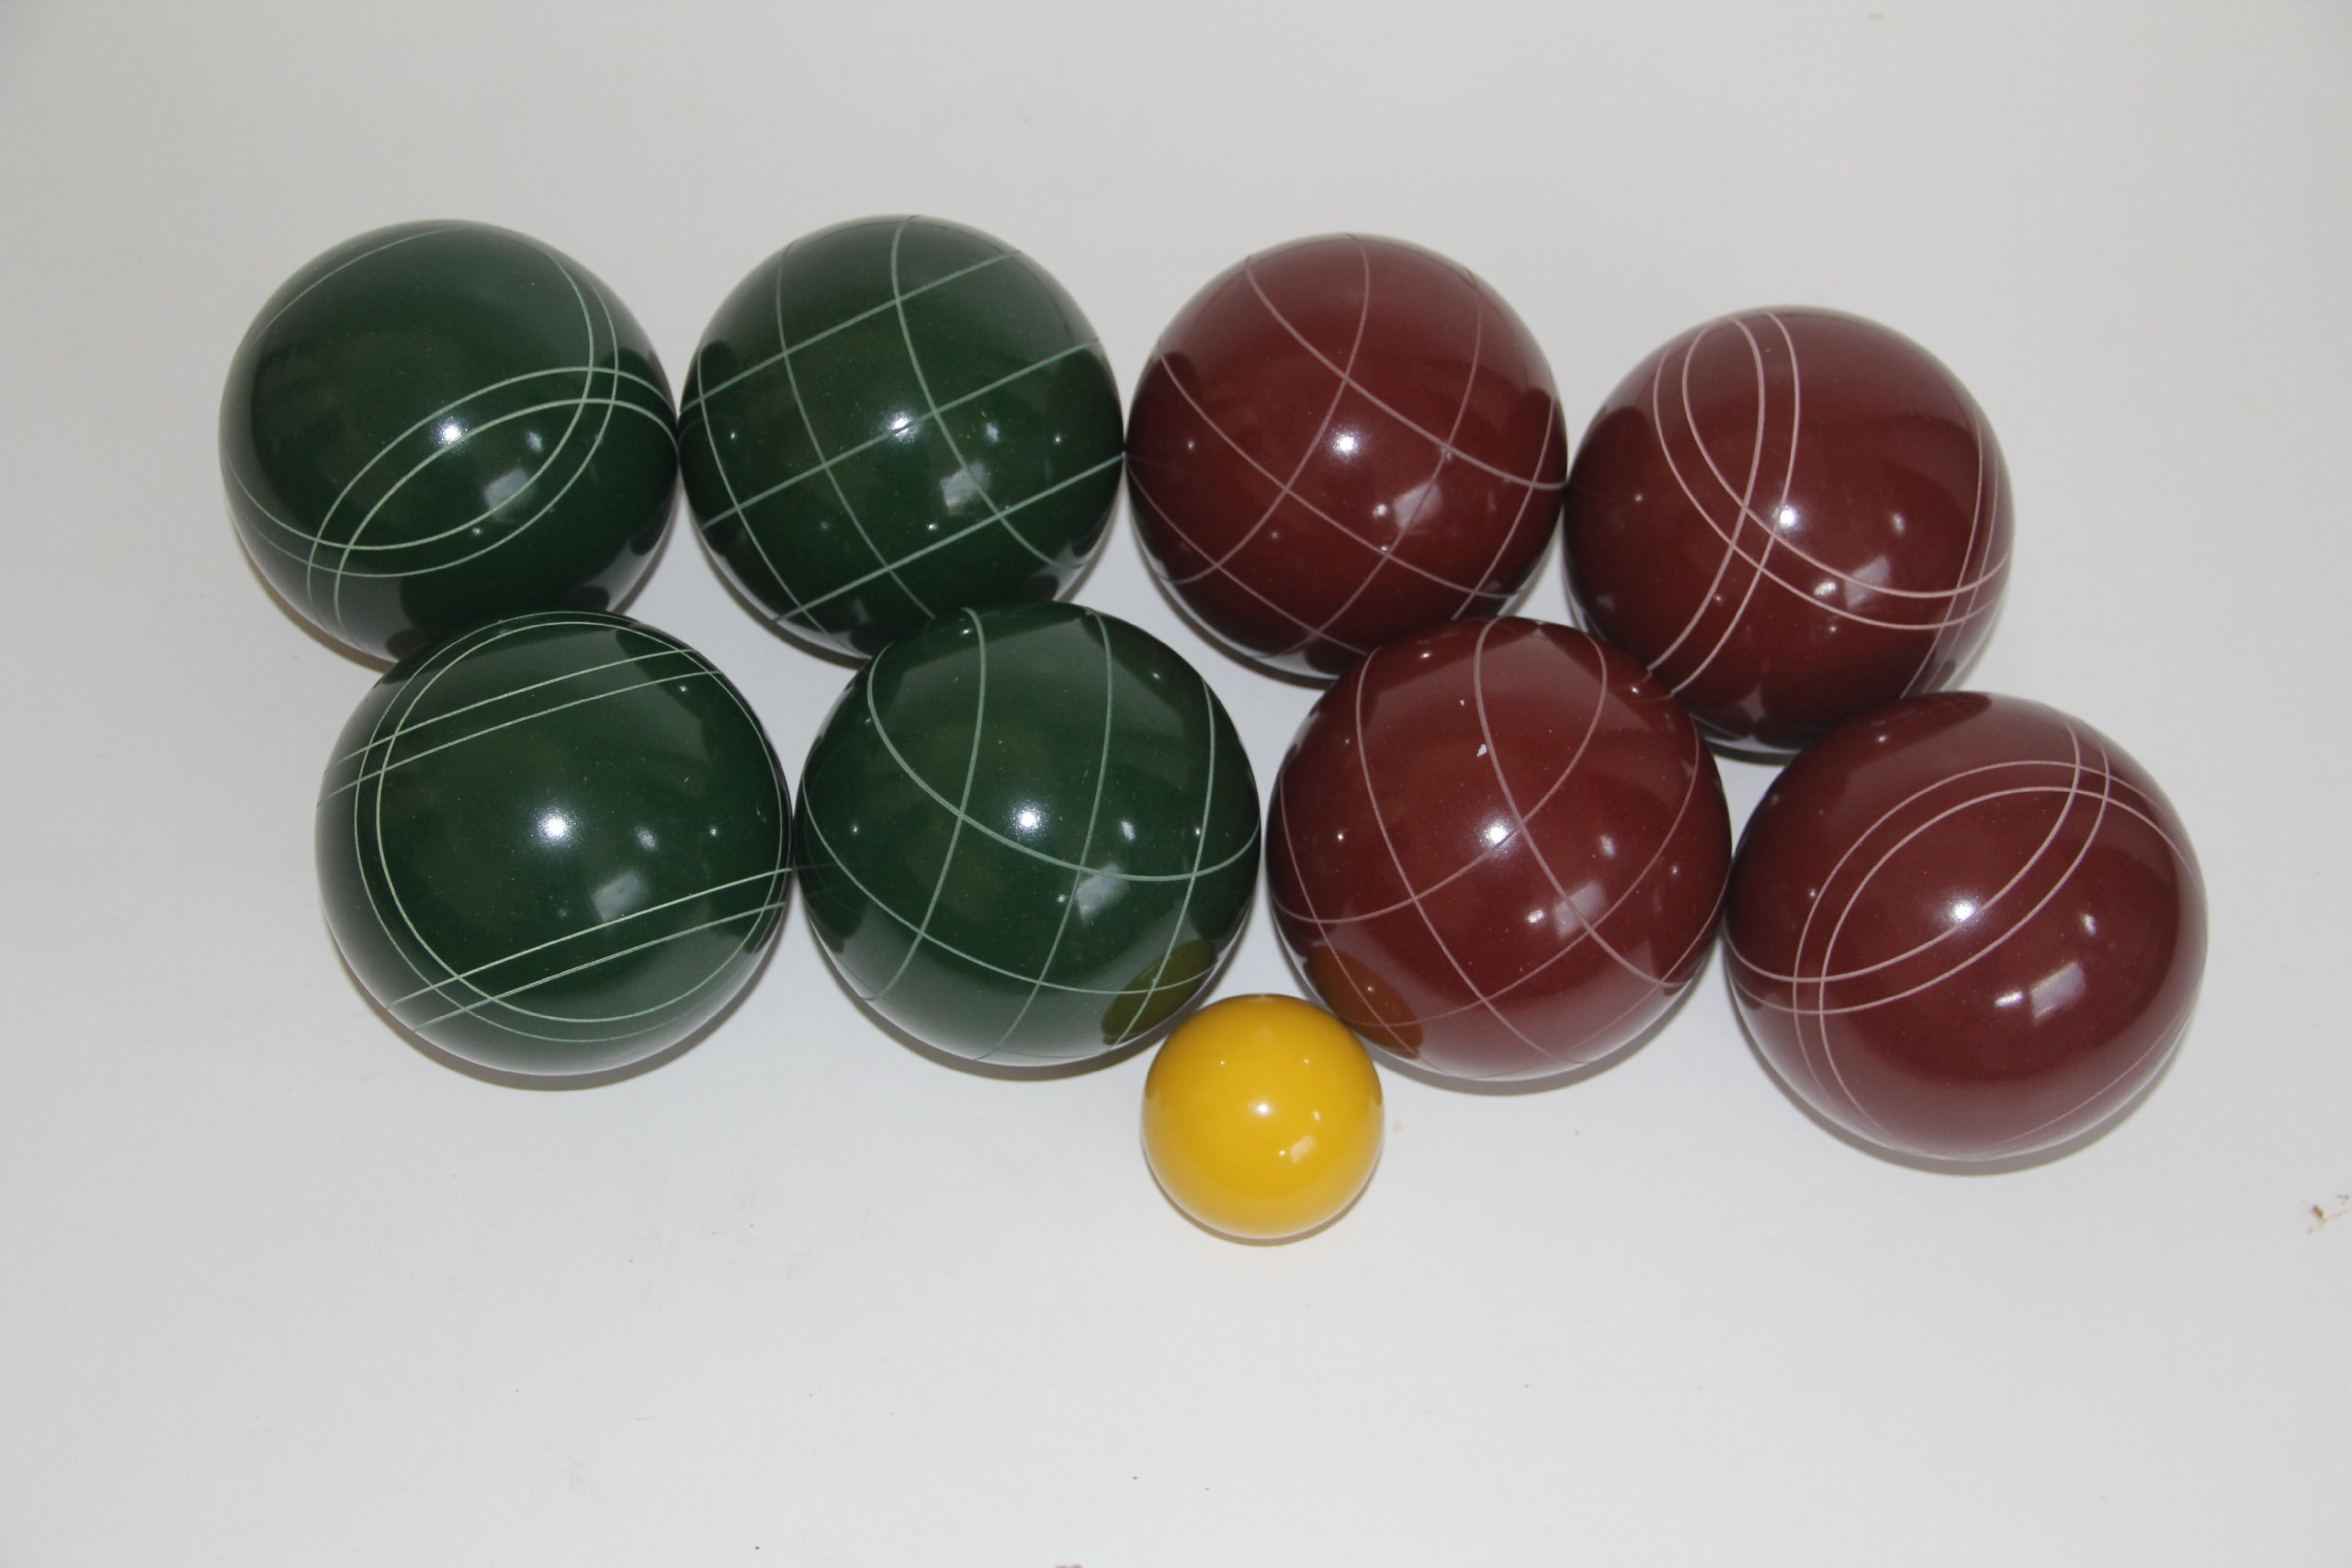 Premium Quality EPCO Tournament Set - 110mm Red and Green Bocce Balls - NO BAG OPTION [Toy]